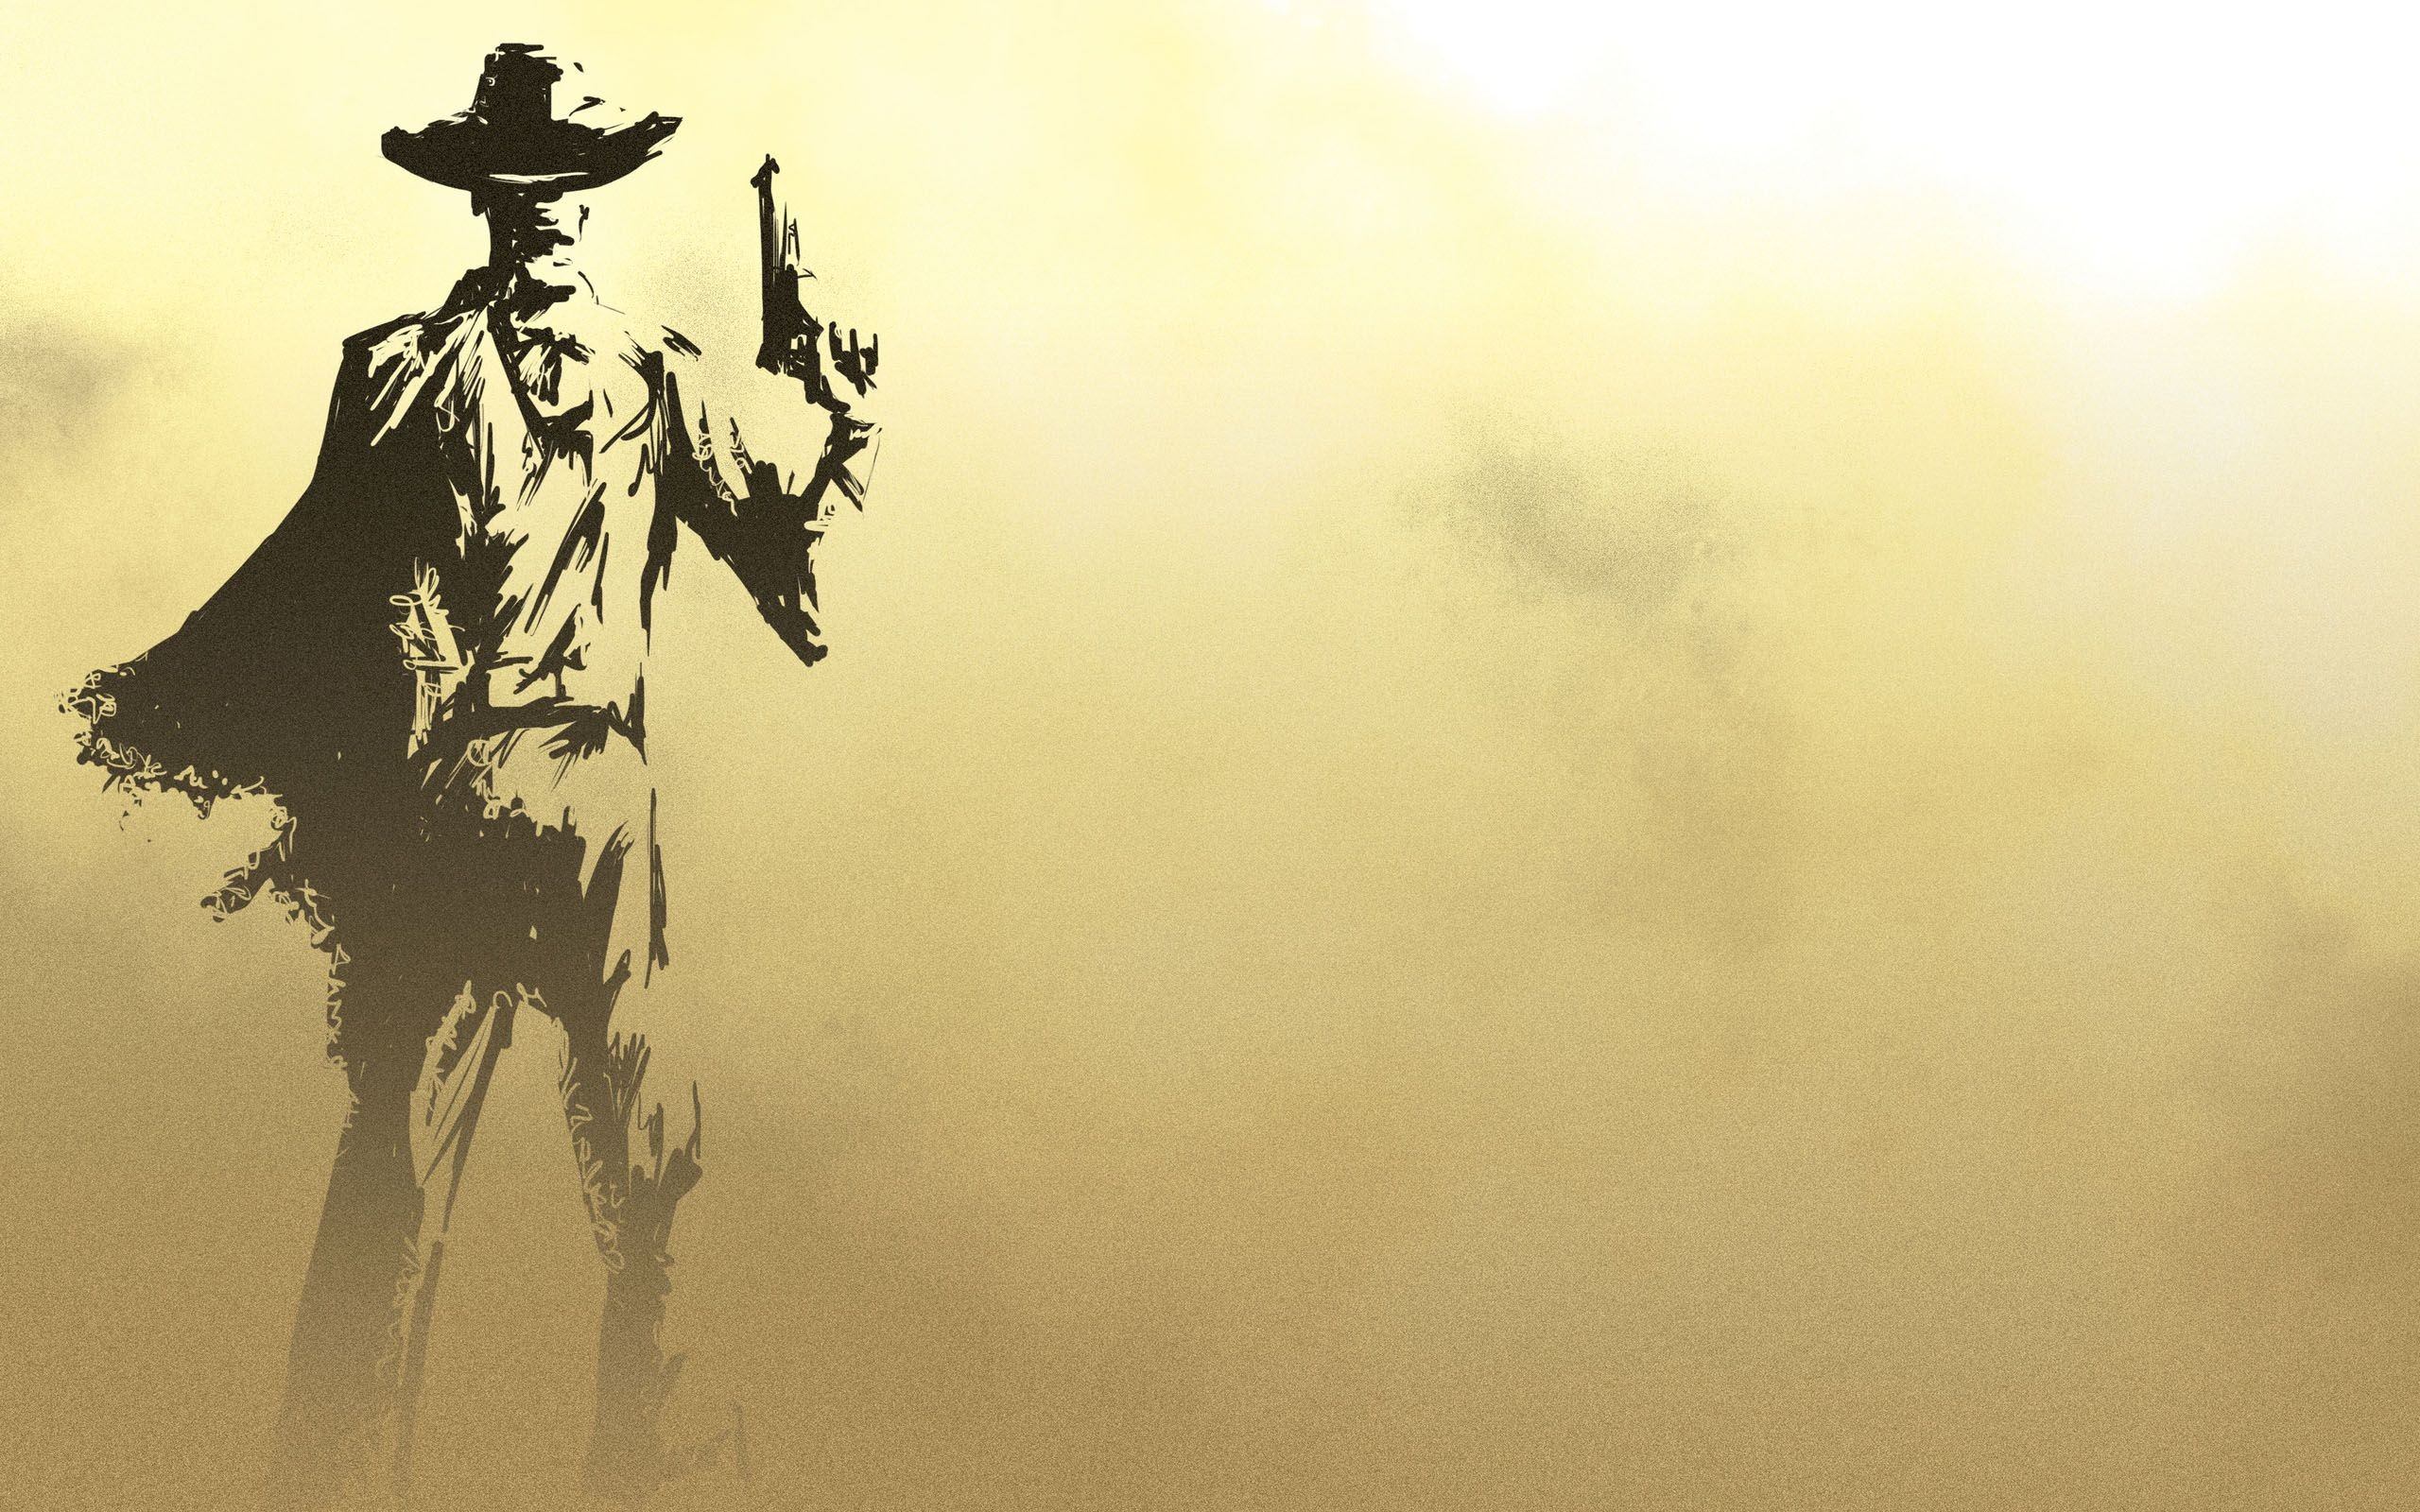 65+ cowboy wallpapers on wallpaperplay